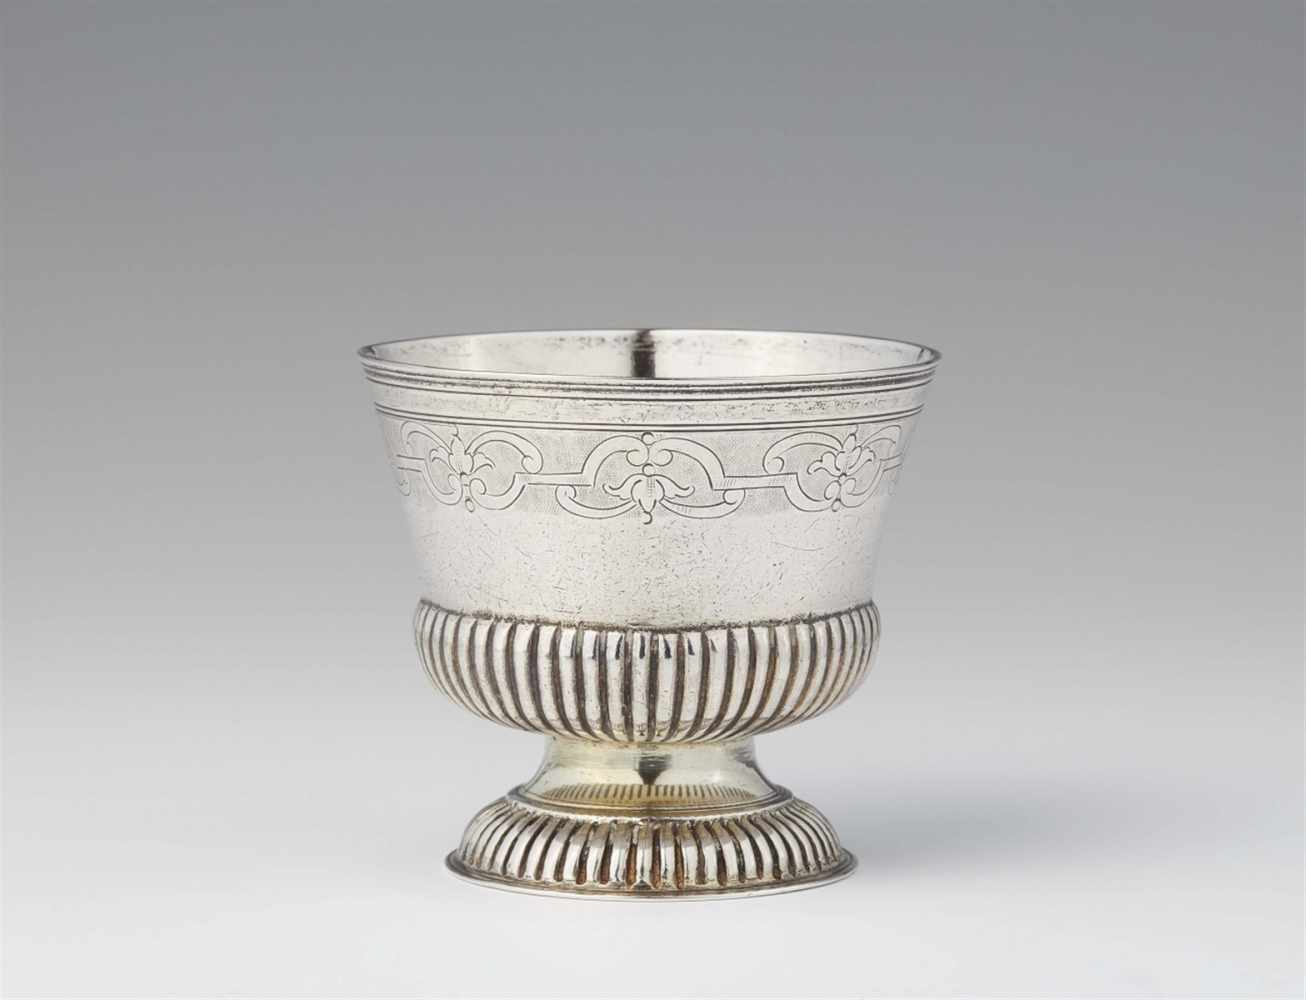 Lot 324 - An Augsburg Régence silver beakerGadrooned silver beaker with remains of gilding and engraved